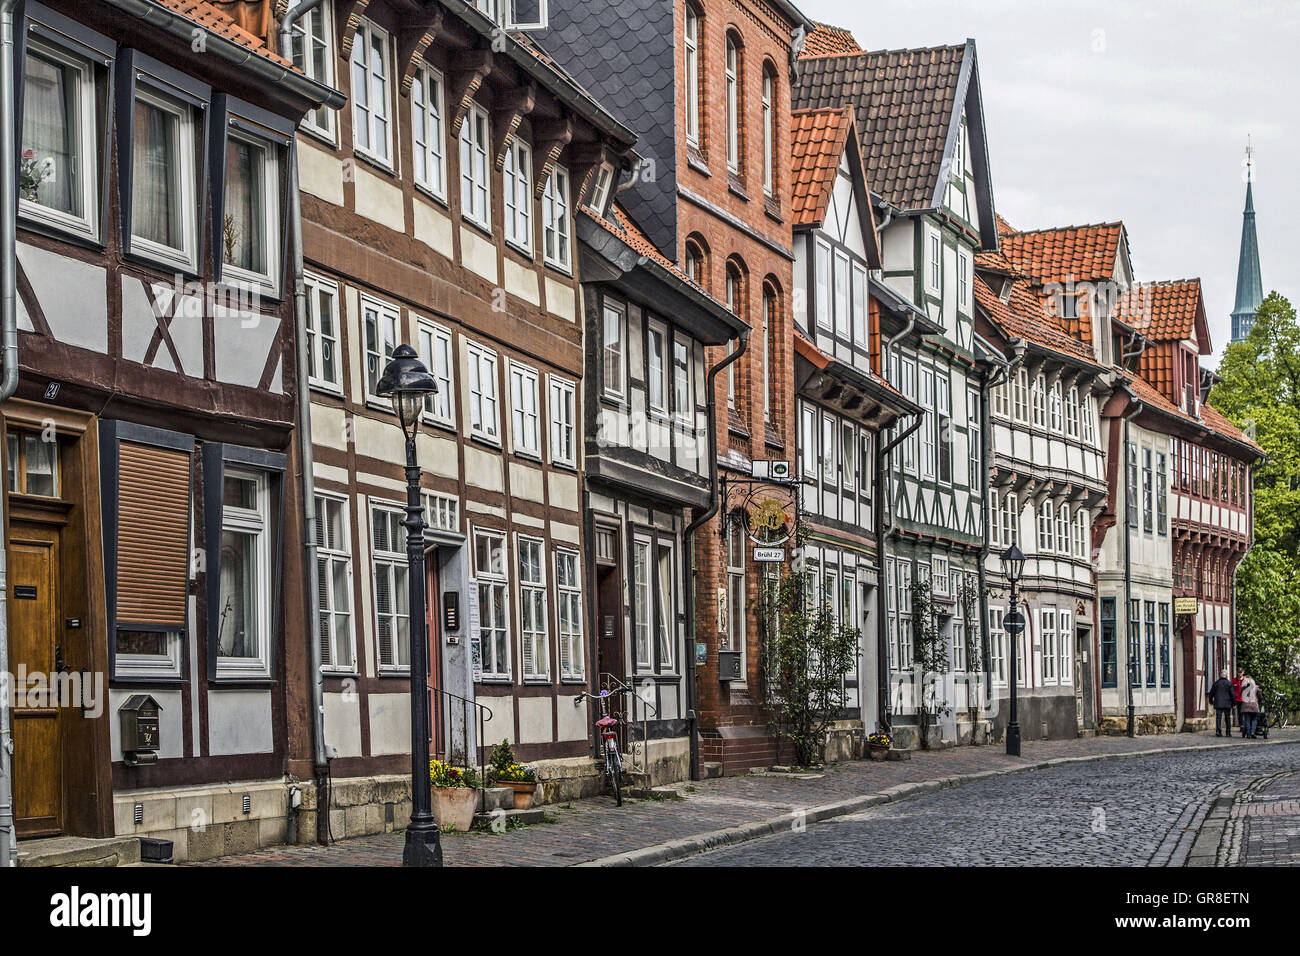 The Old City Of Hildesheim In Lower Saxony Is Characterized By Its Historic Buildings Stock Photo